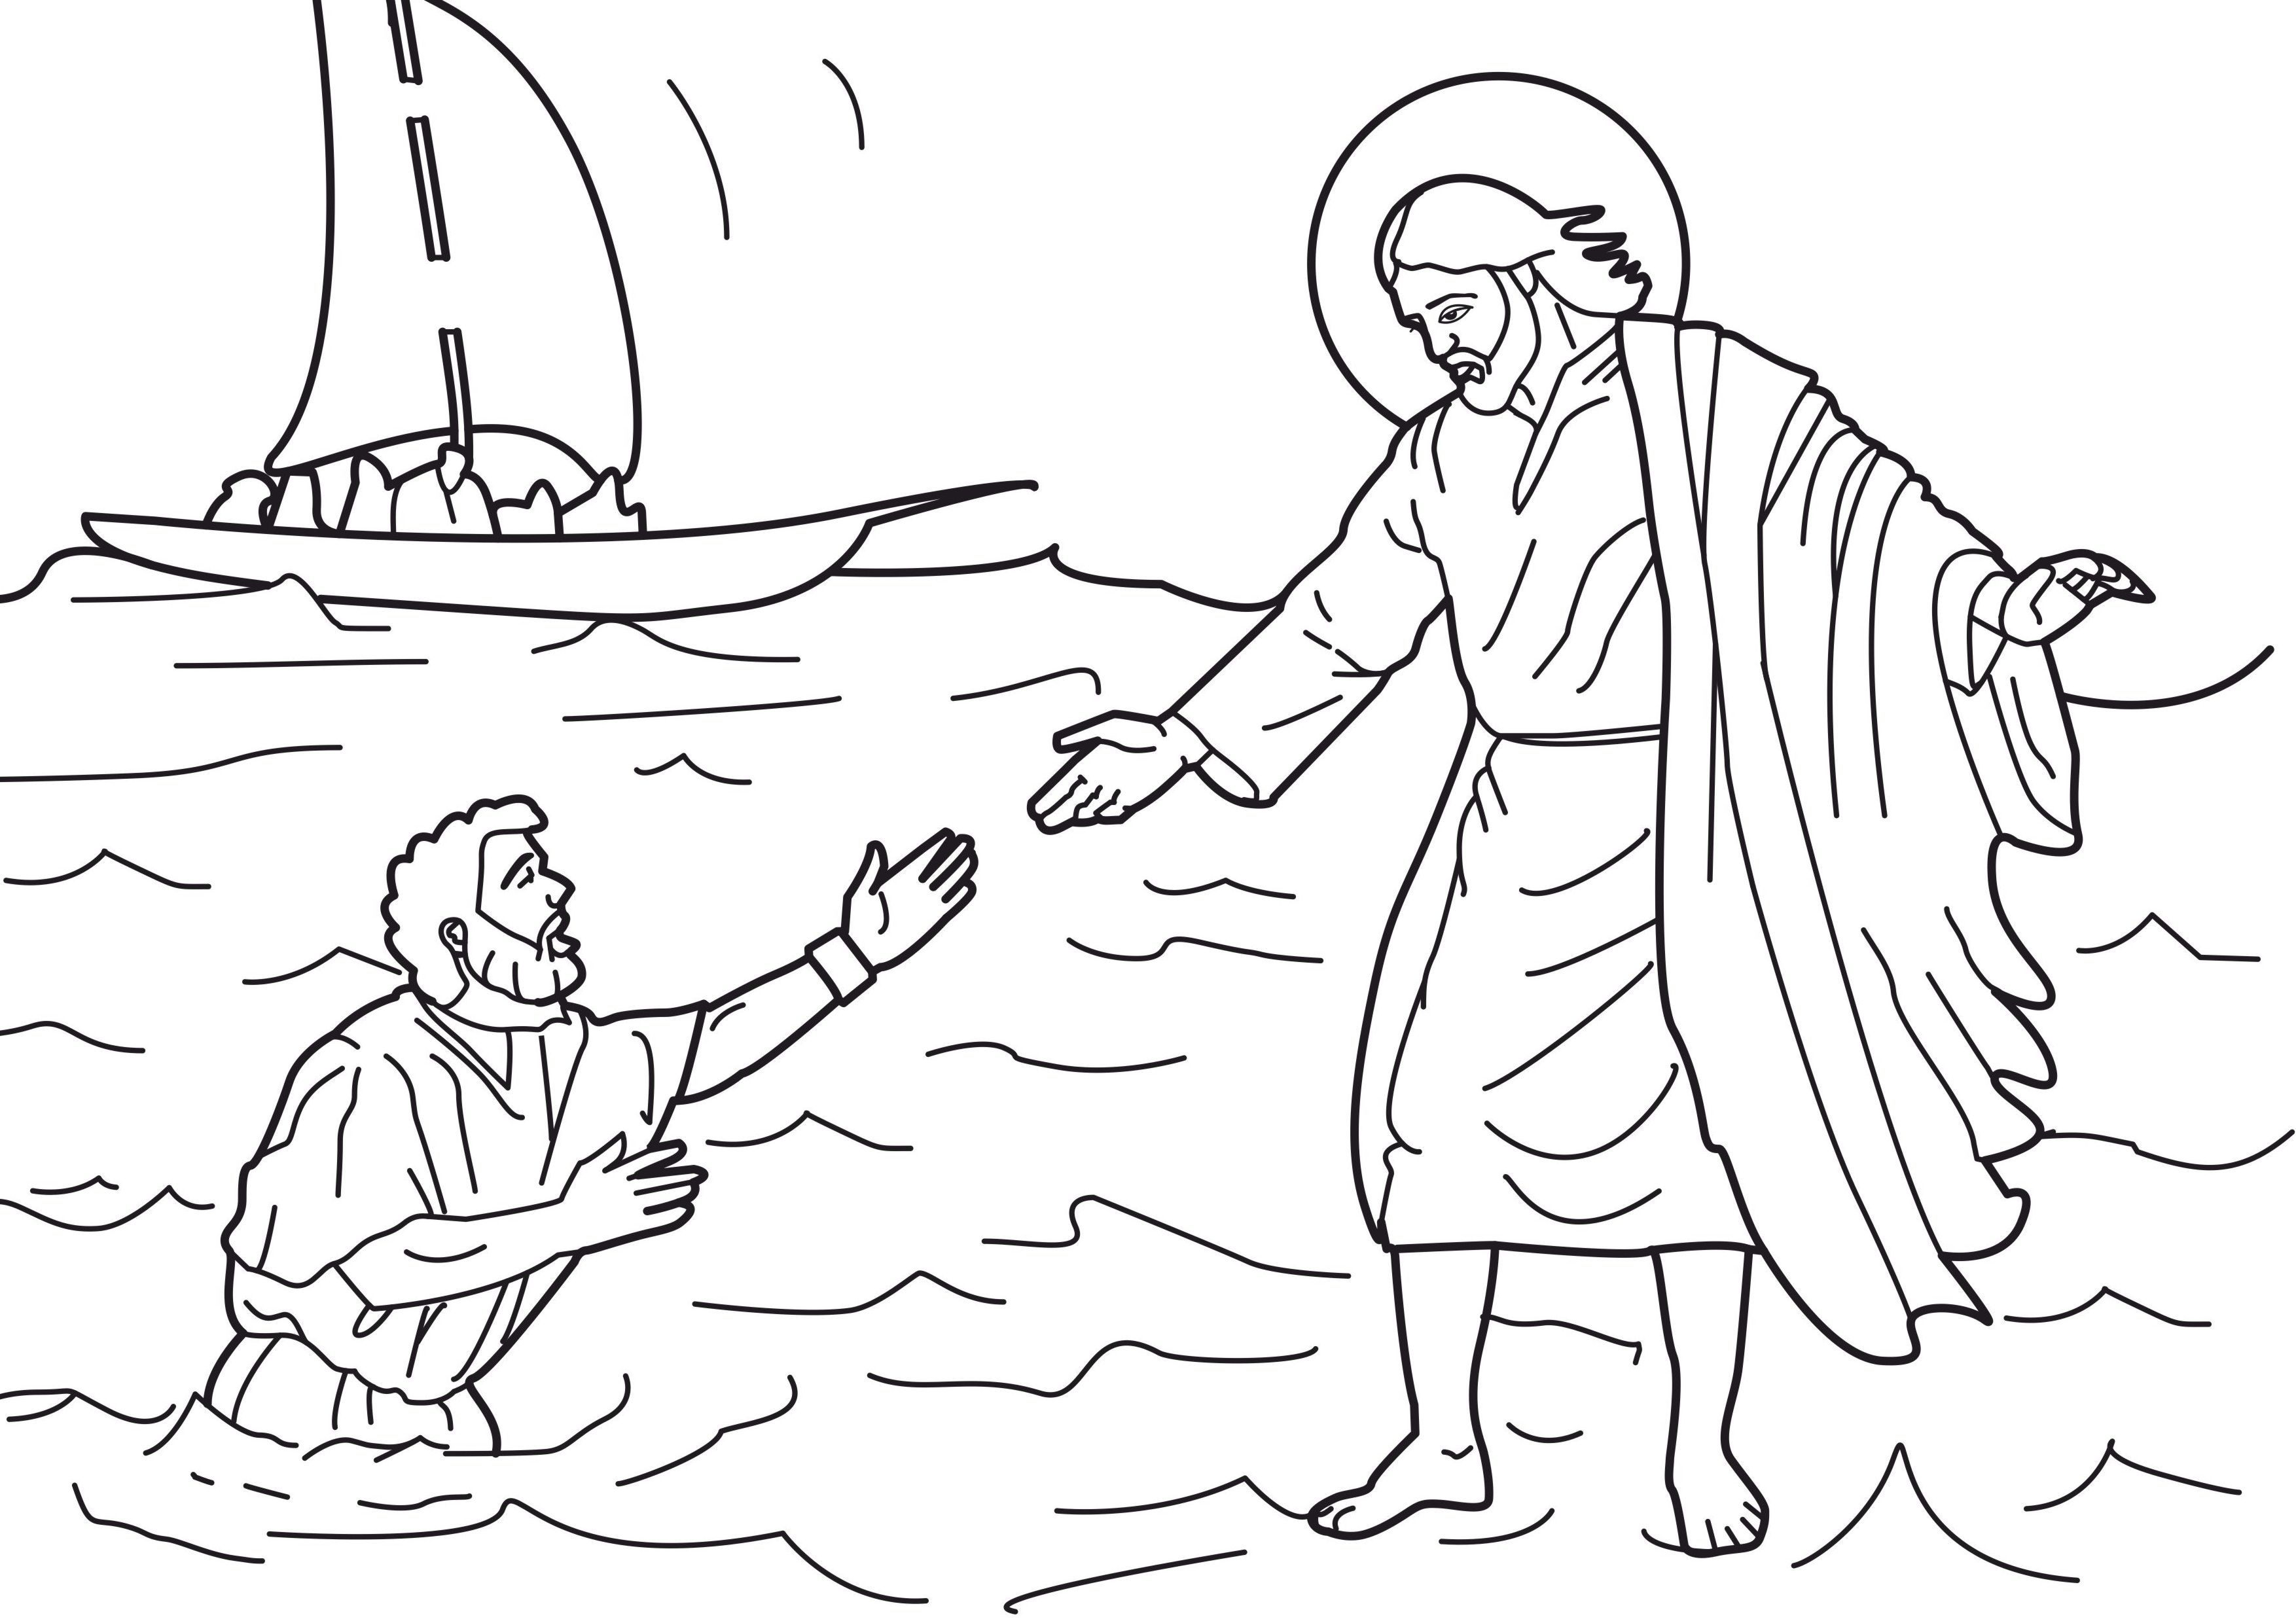 Free Printable Jesus Coloring Pages For Kids | Sunday School - Free Printable Jesus Coloring Pages